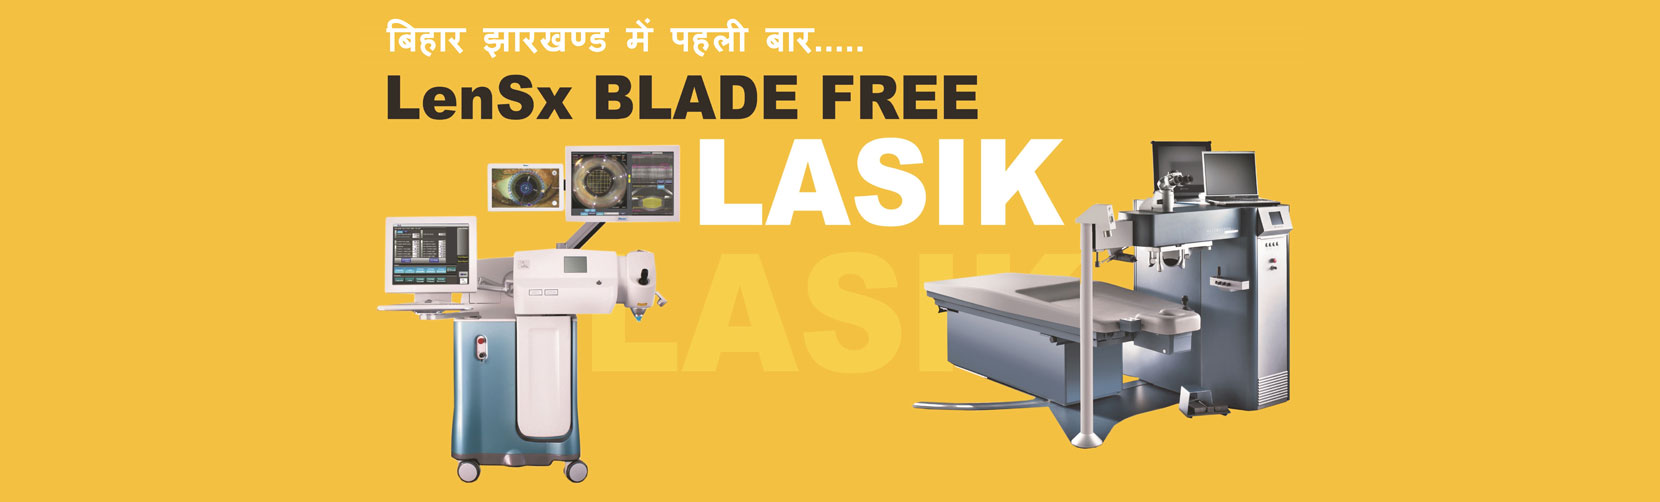 Best femto laser cataract surgery hospital in india, LenSx Bladeless Lasik, femto laser cataract surgery , best 